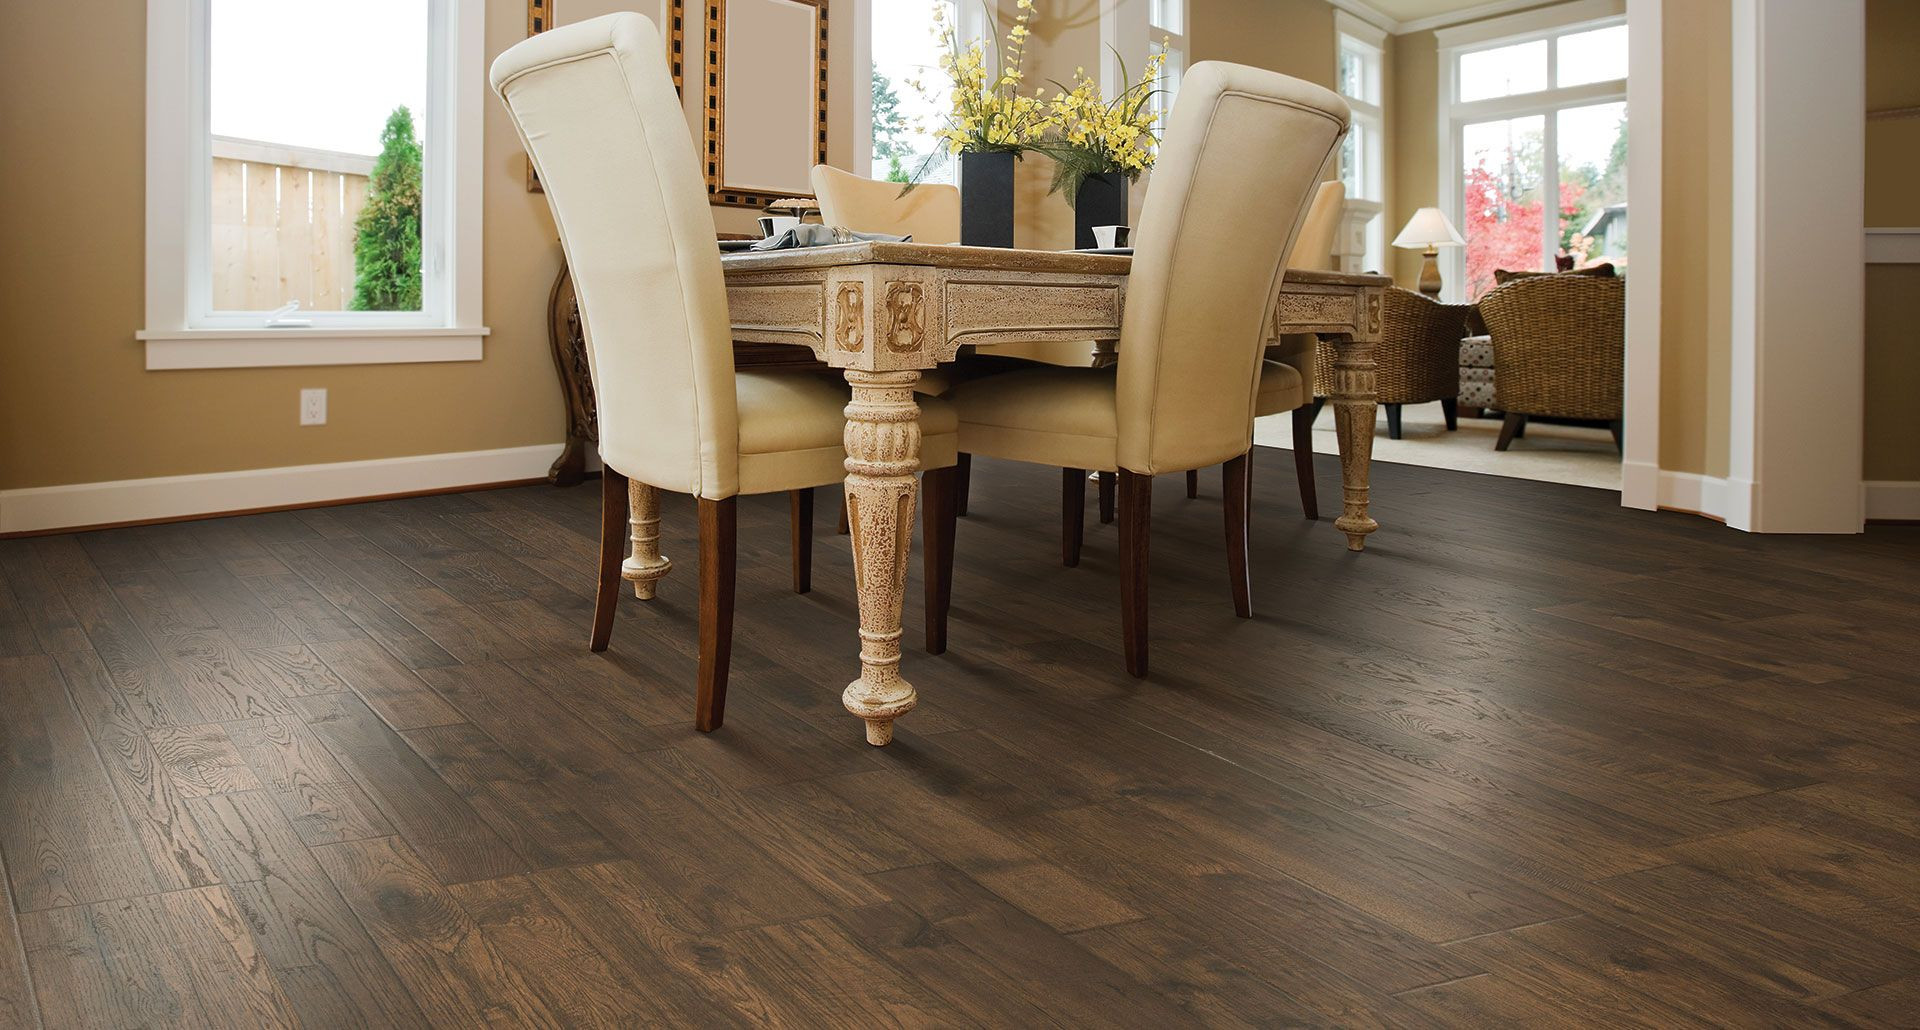 hardwood floor filler of make a bold statement in your home with our beautiful brookdale intended for laminate flooring